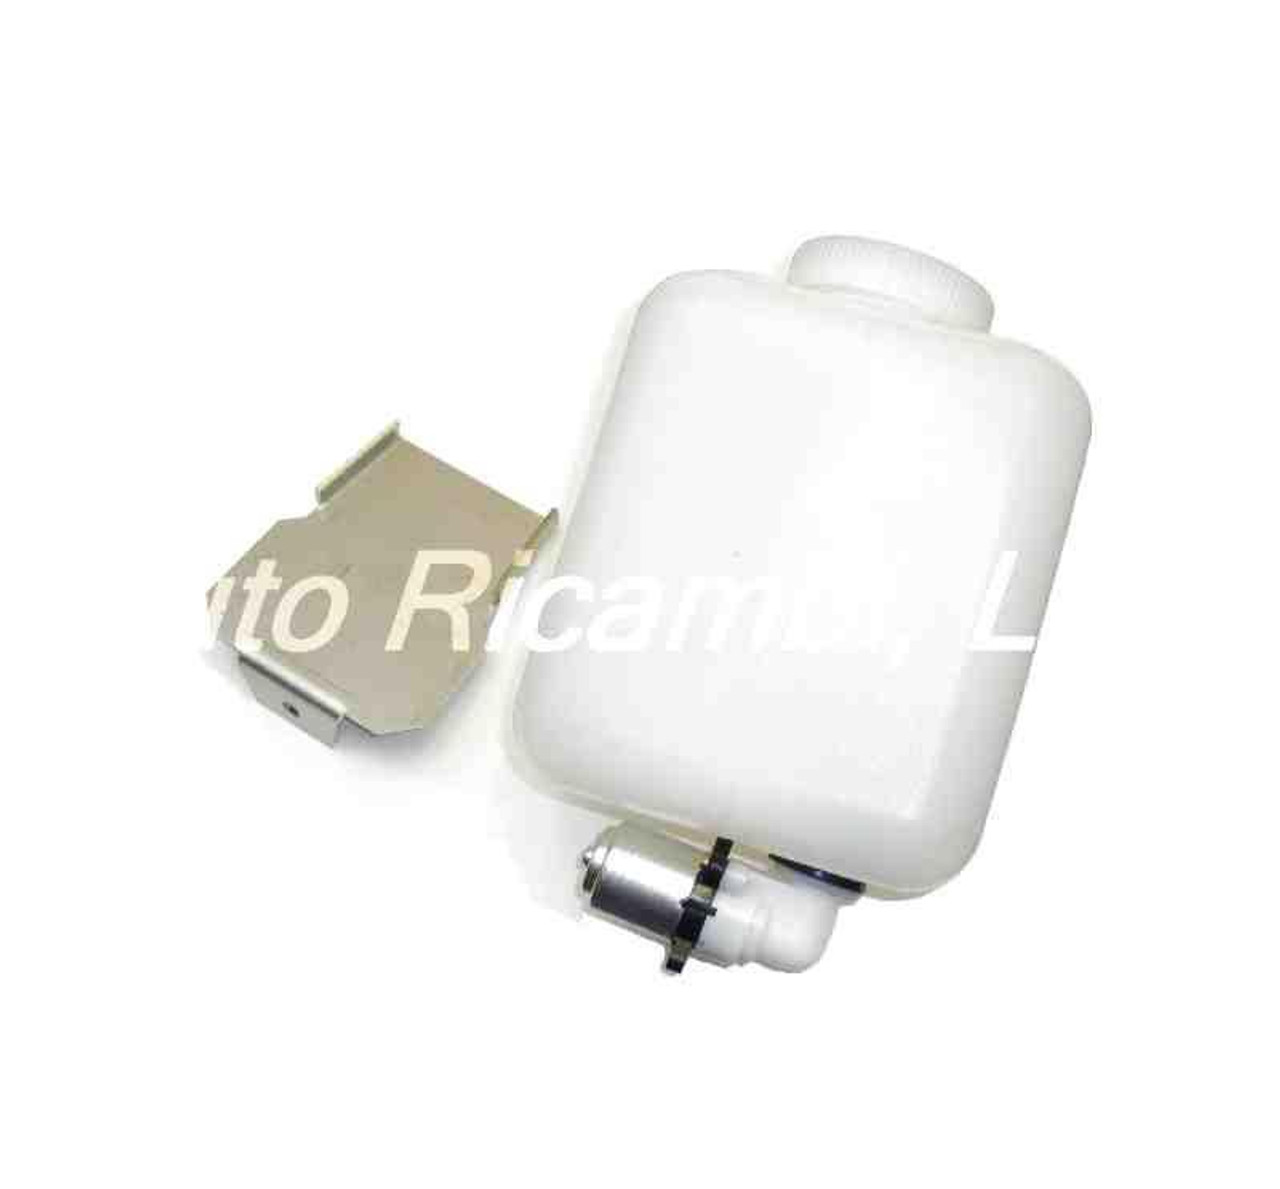 Replacement windshield washer tank and pump FIAT Spider 2000 1980-1982 - Auto Ricambi